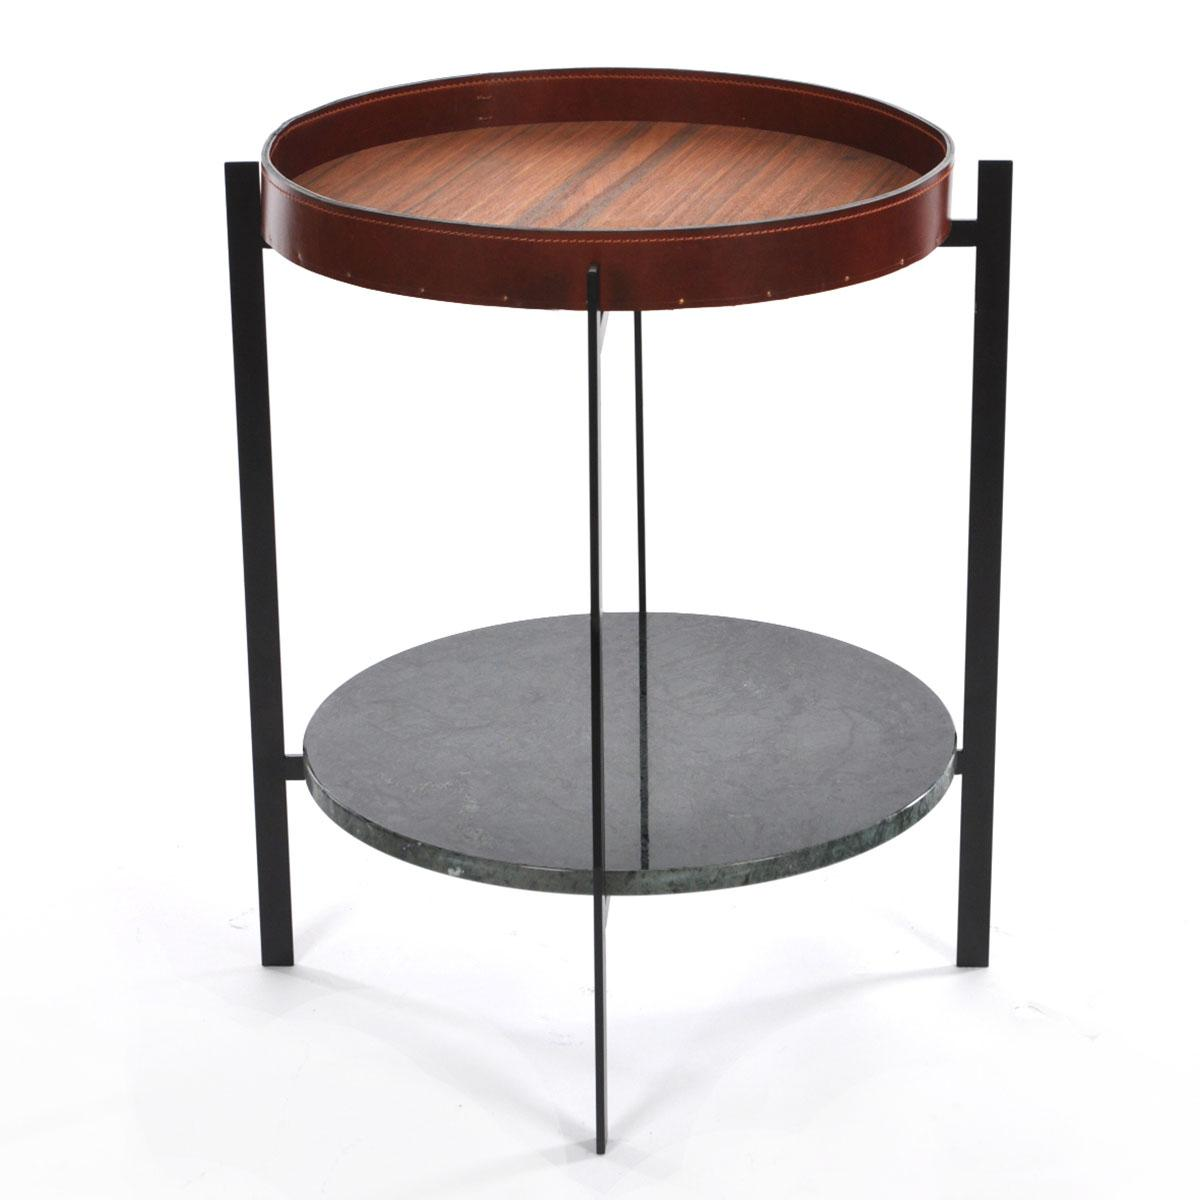 DECK TABLE_1200_0003_Deck Table cognac leather,indio,Black